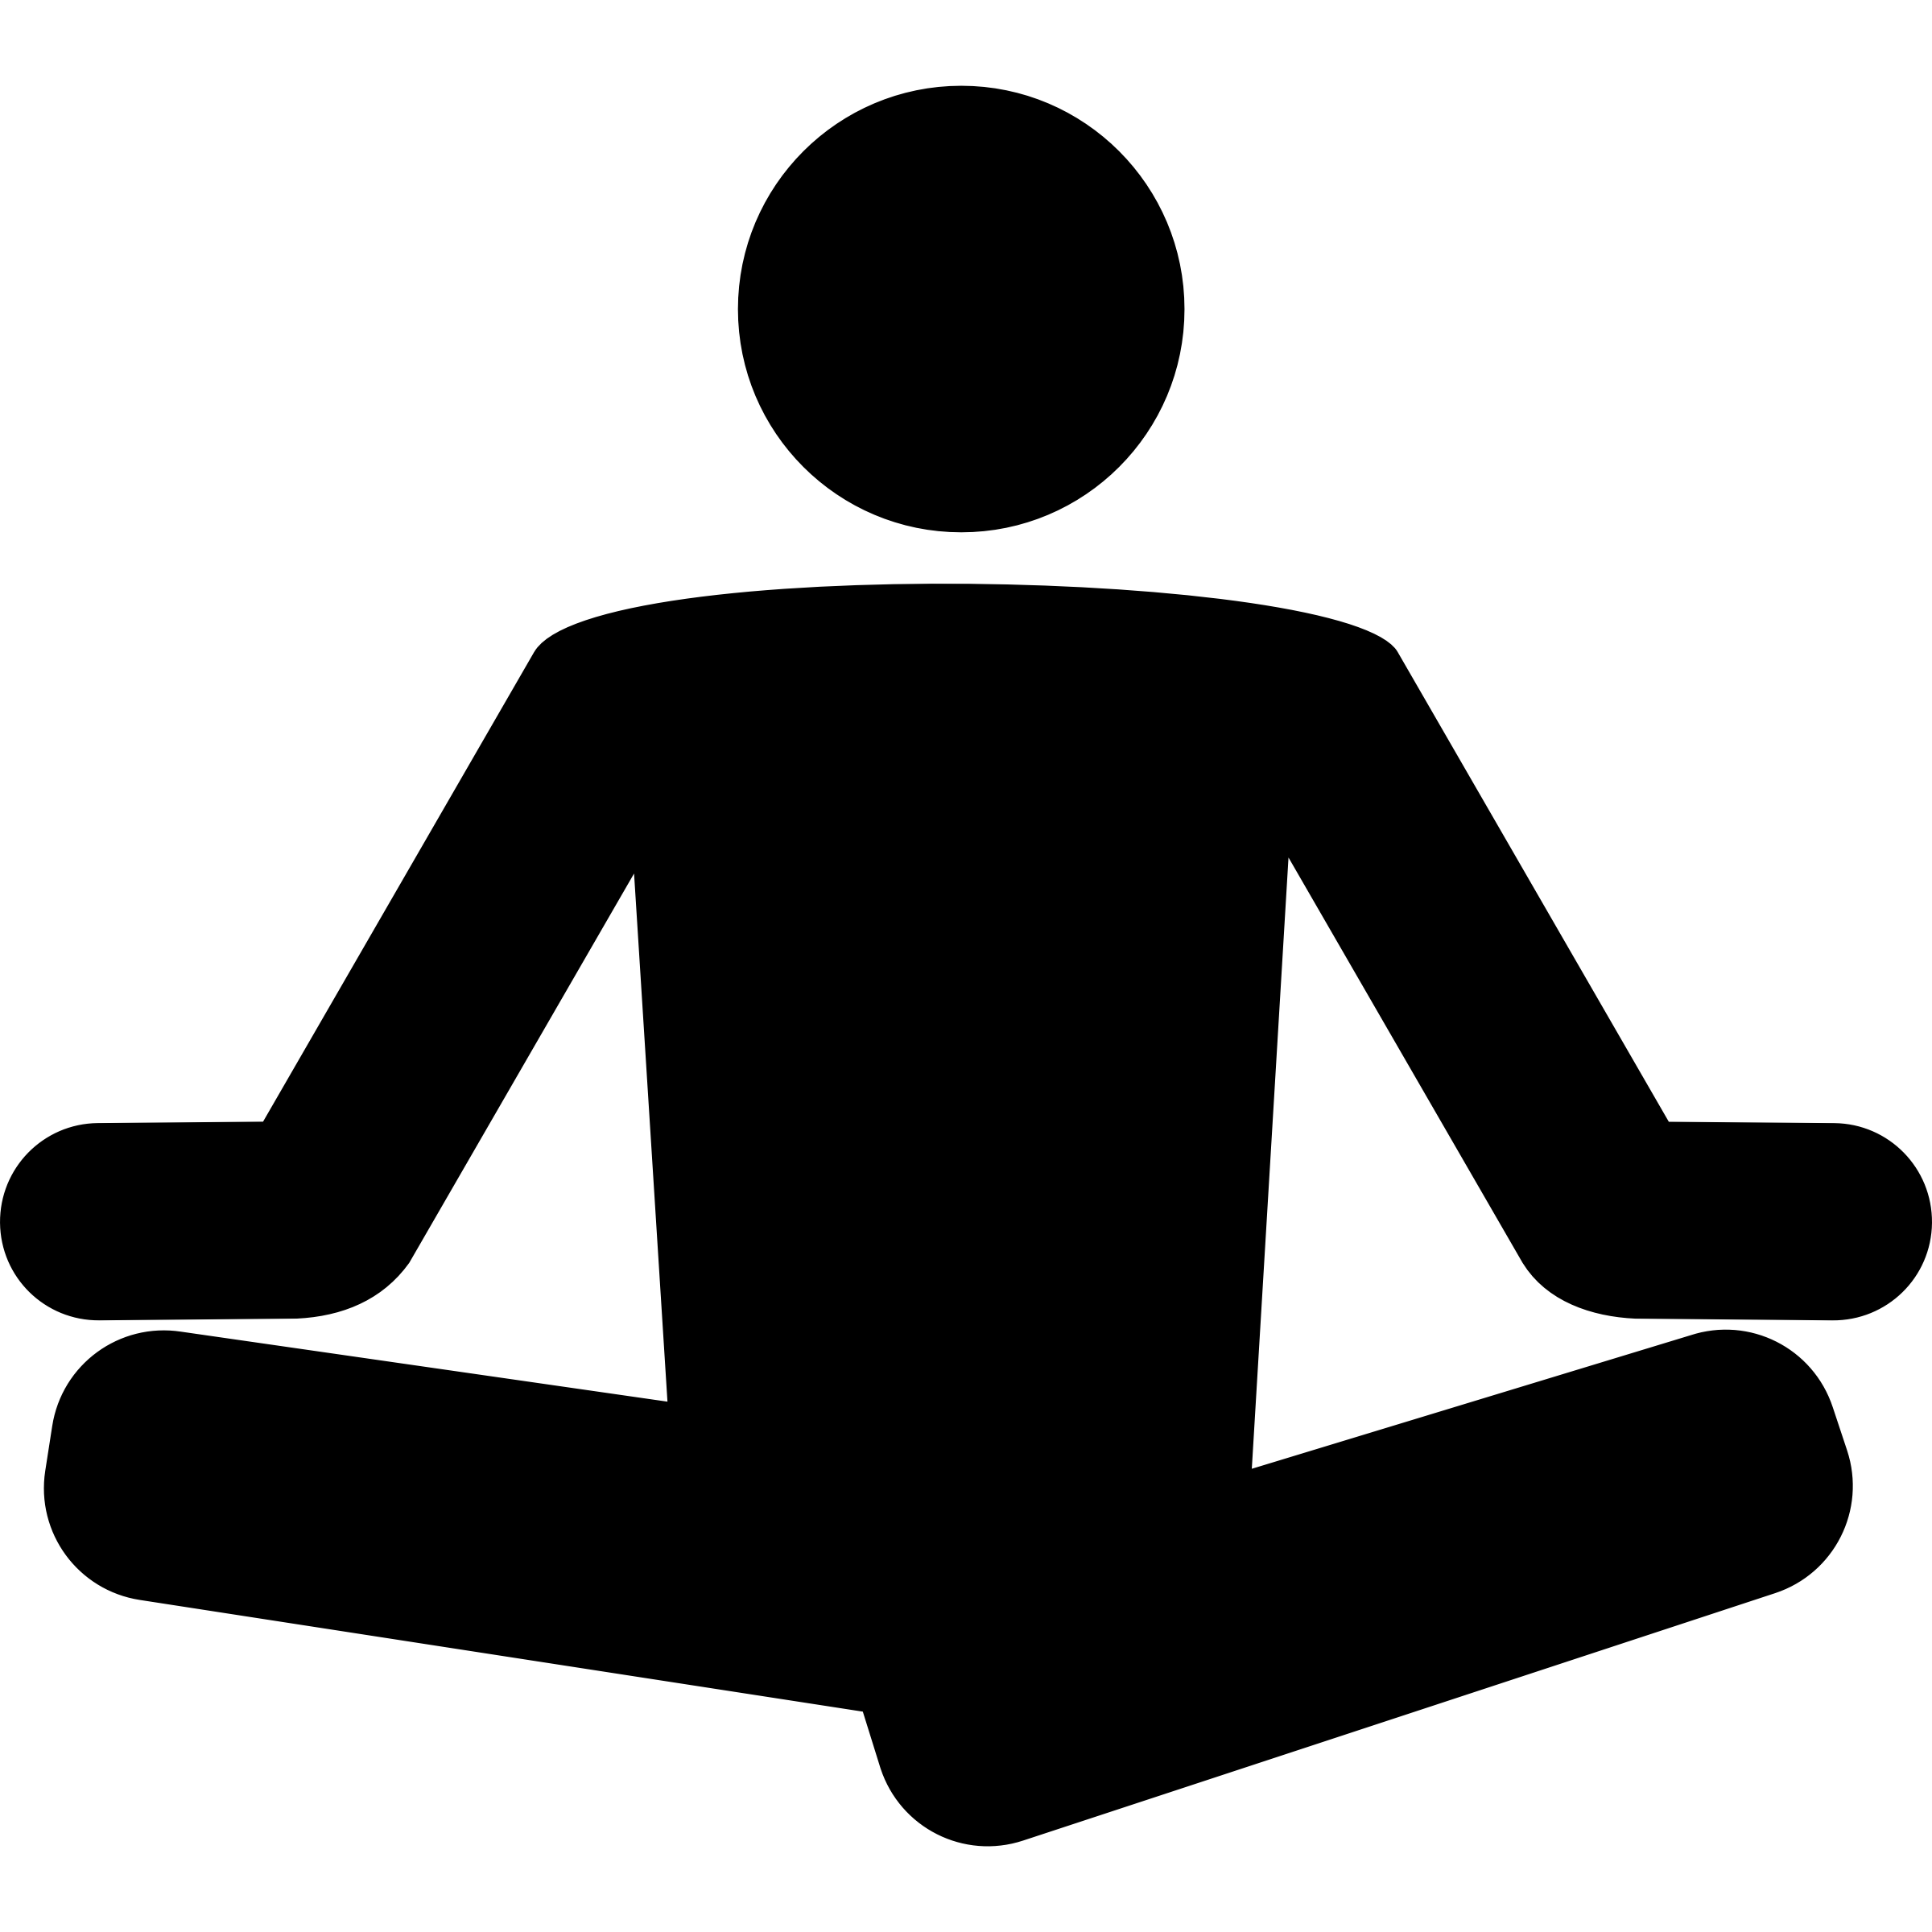 Seated cat clipart picture library stock Yoga Hacks That Will Loosen You Up at Work picture library stock